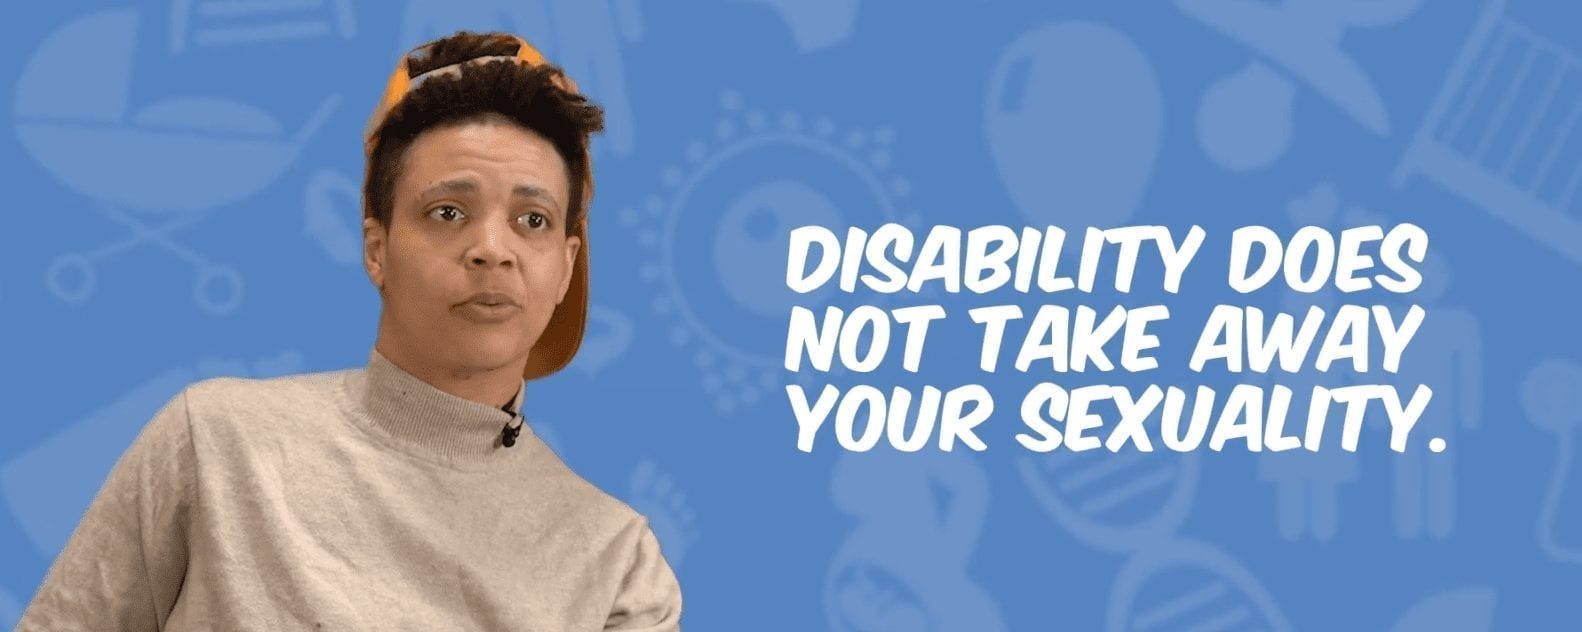 disability does not take away your sexuality